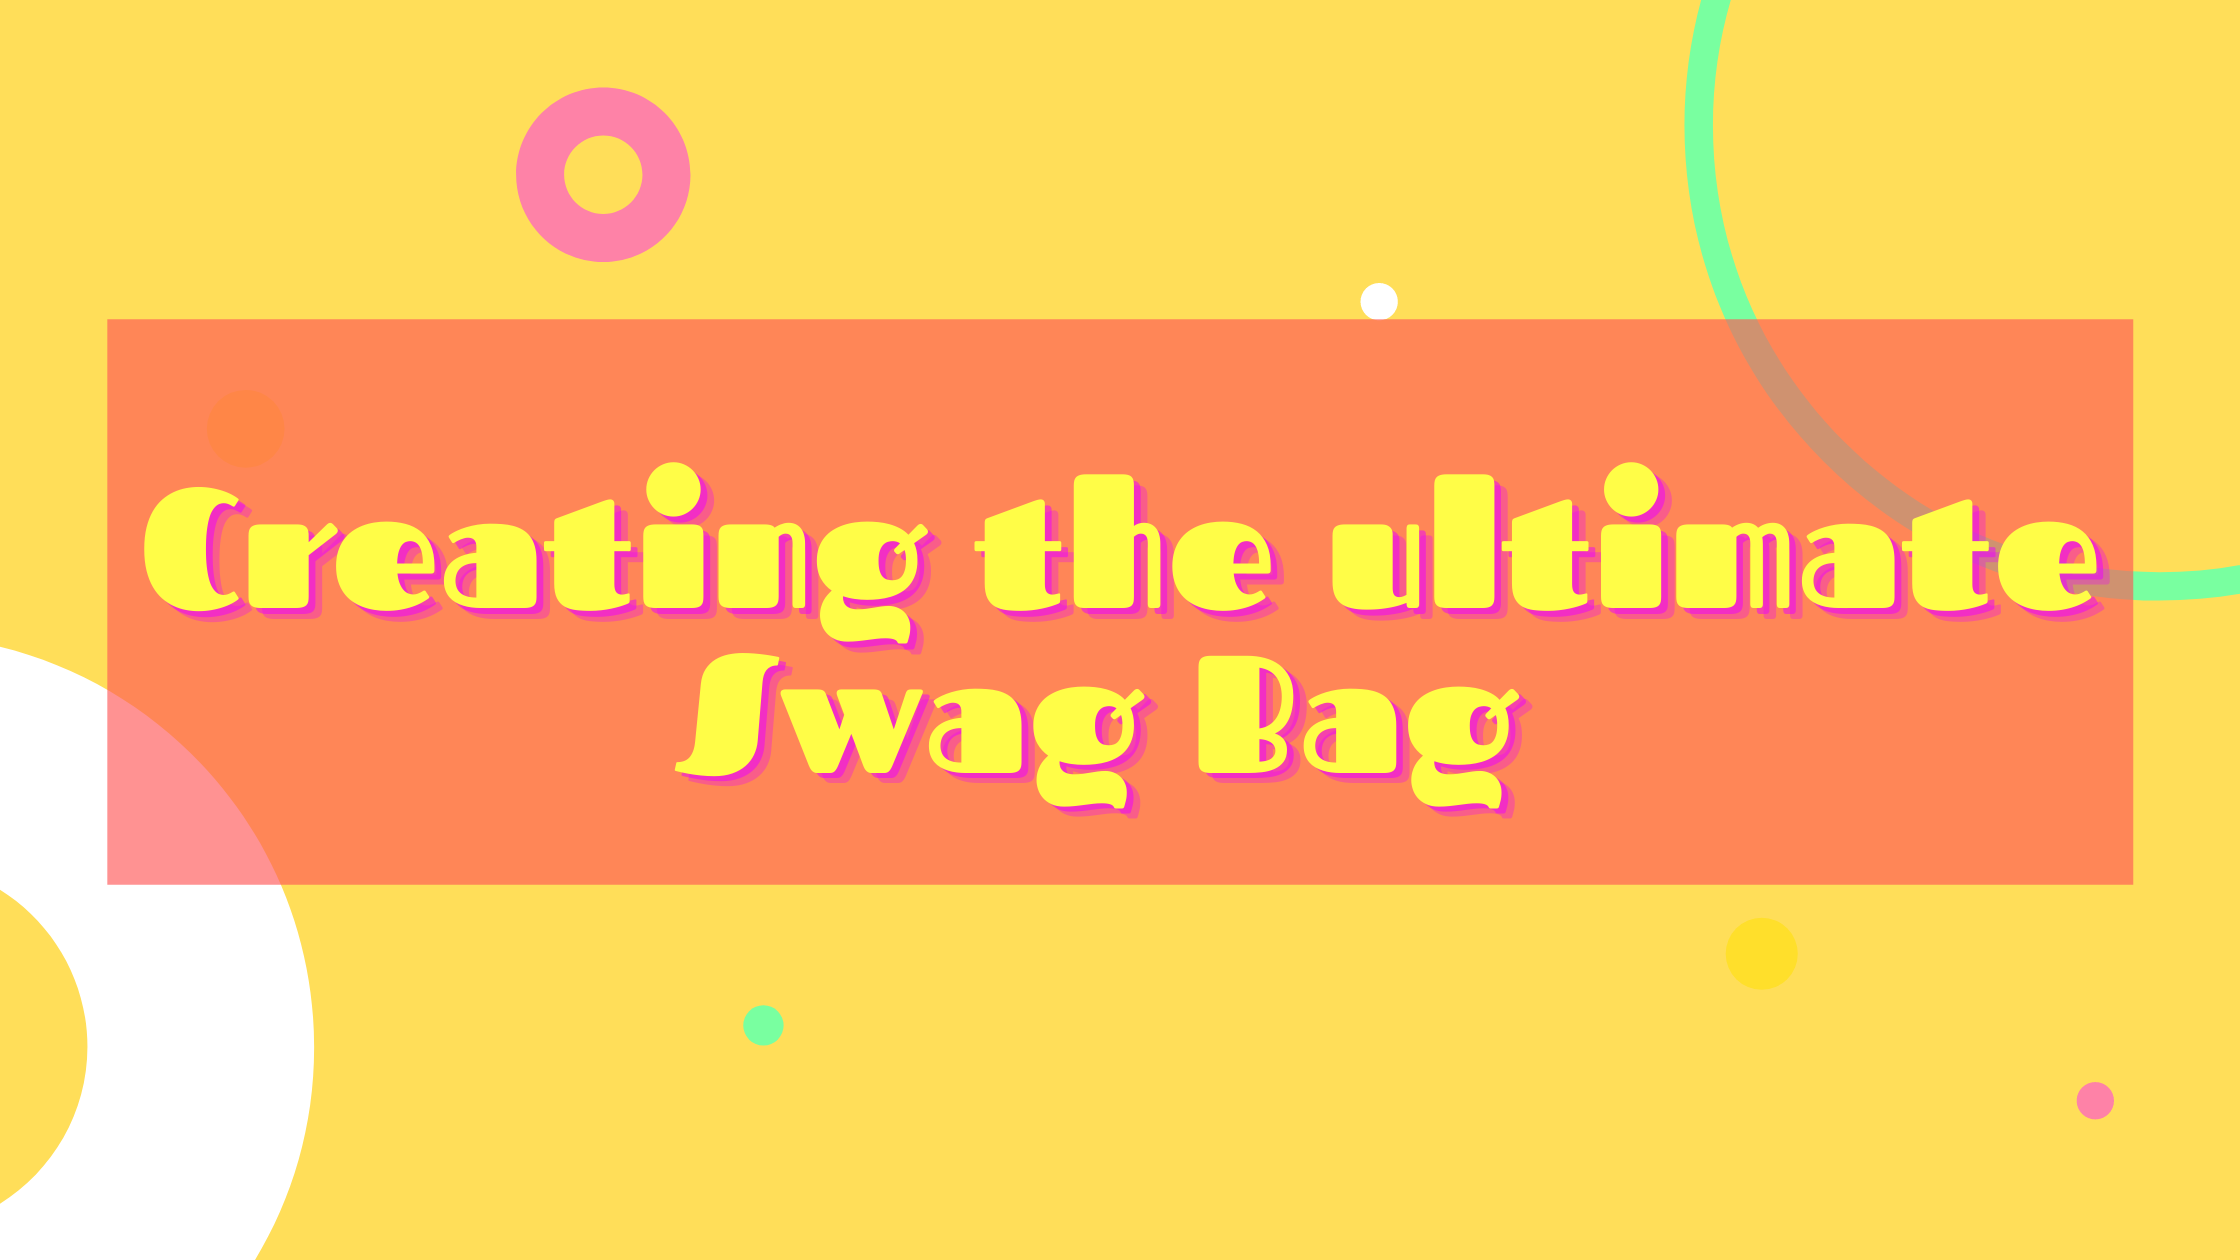 Creating the Ultimate Swag Bag